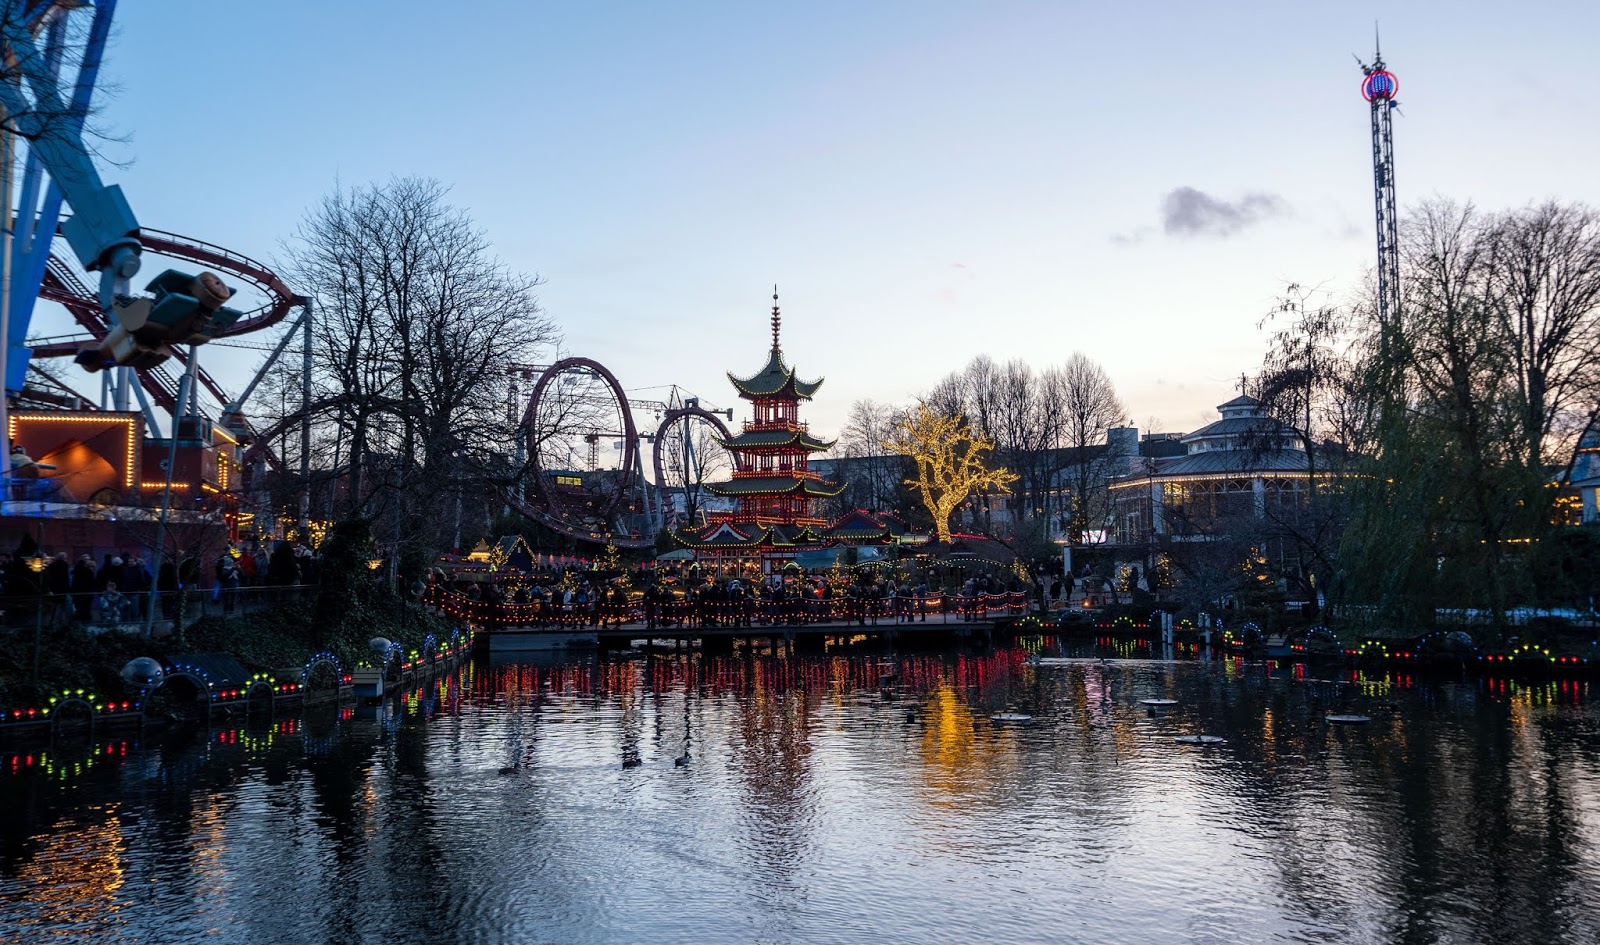 The Tivoli Lake at Tivoli Gardens in Copenhagen, Denmark